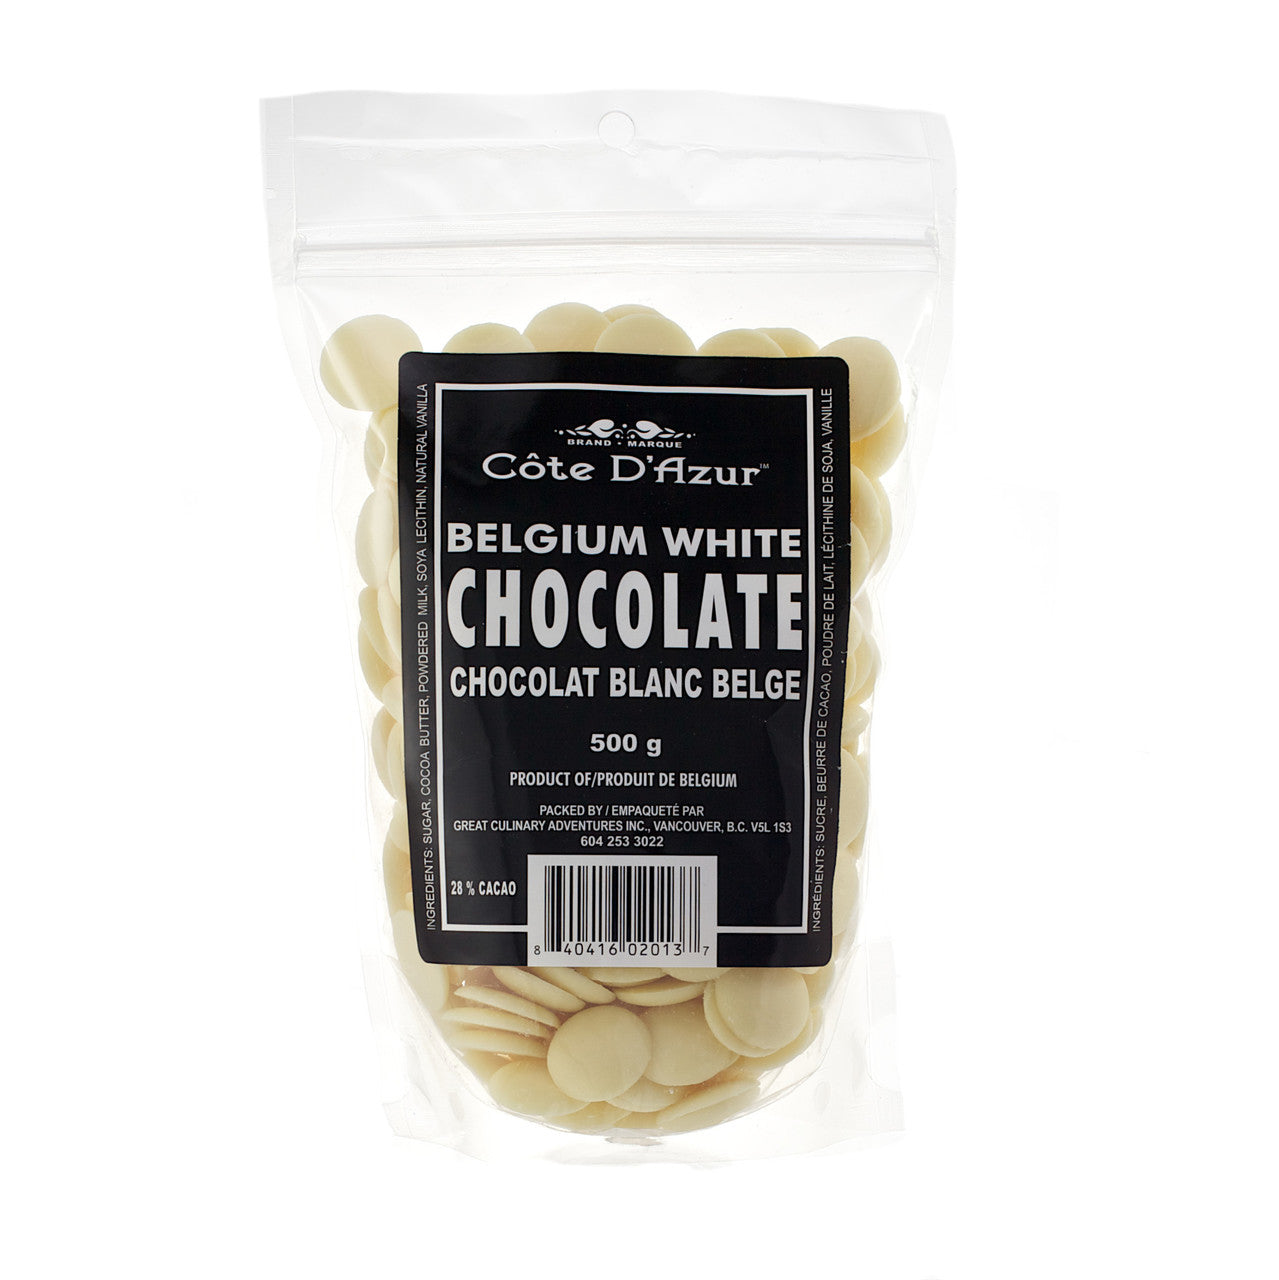 Cote D'Azur Belgian Melting Chocolate - White 500g